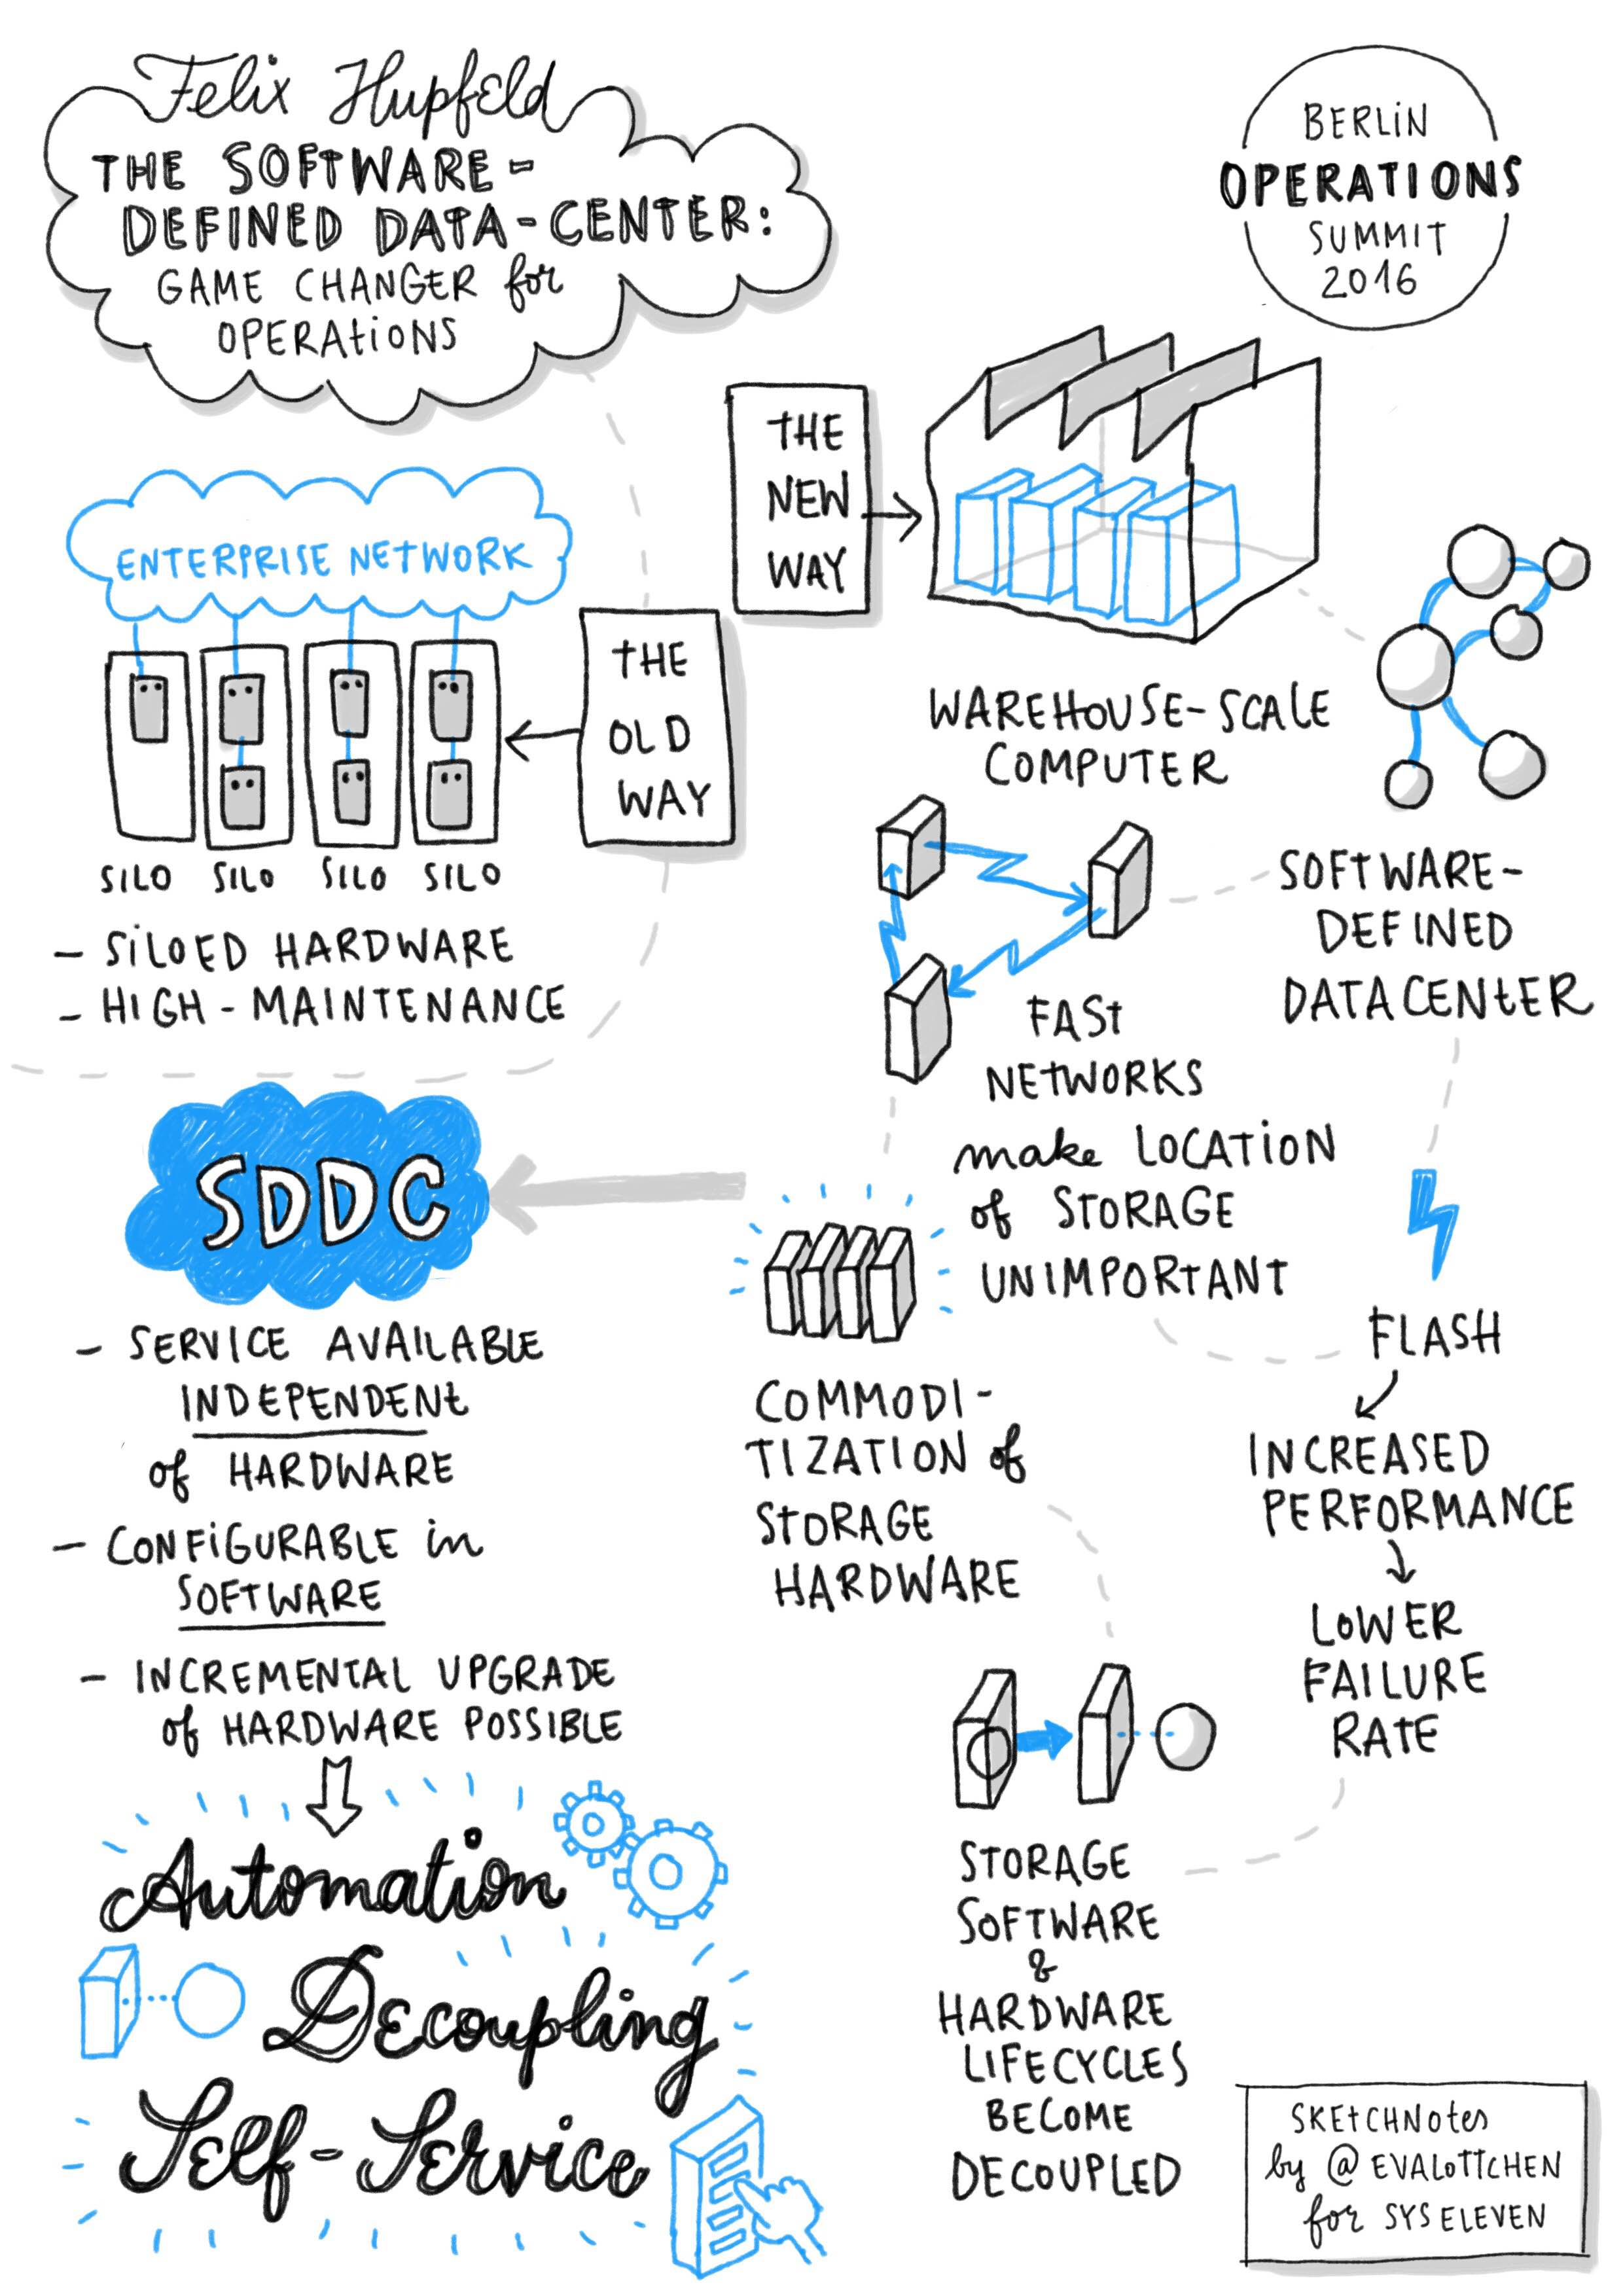 Sketchnotes from the conference